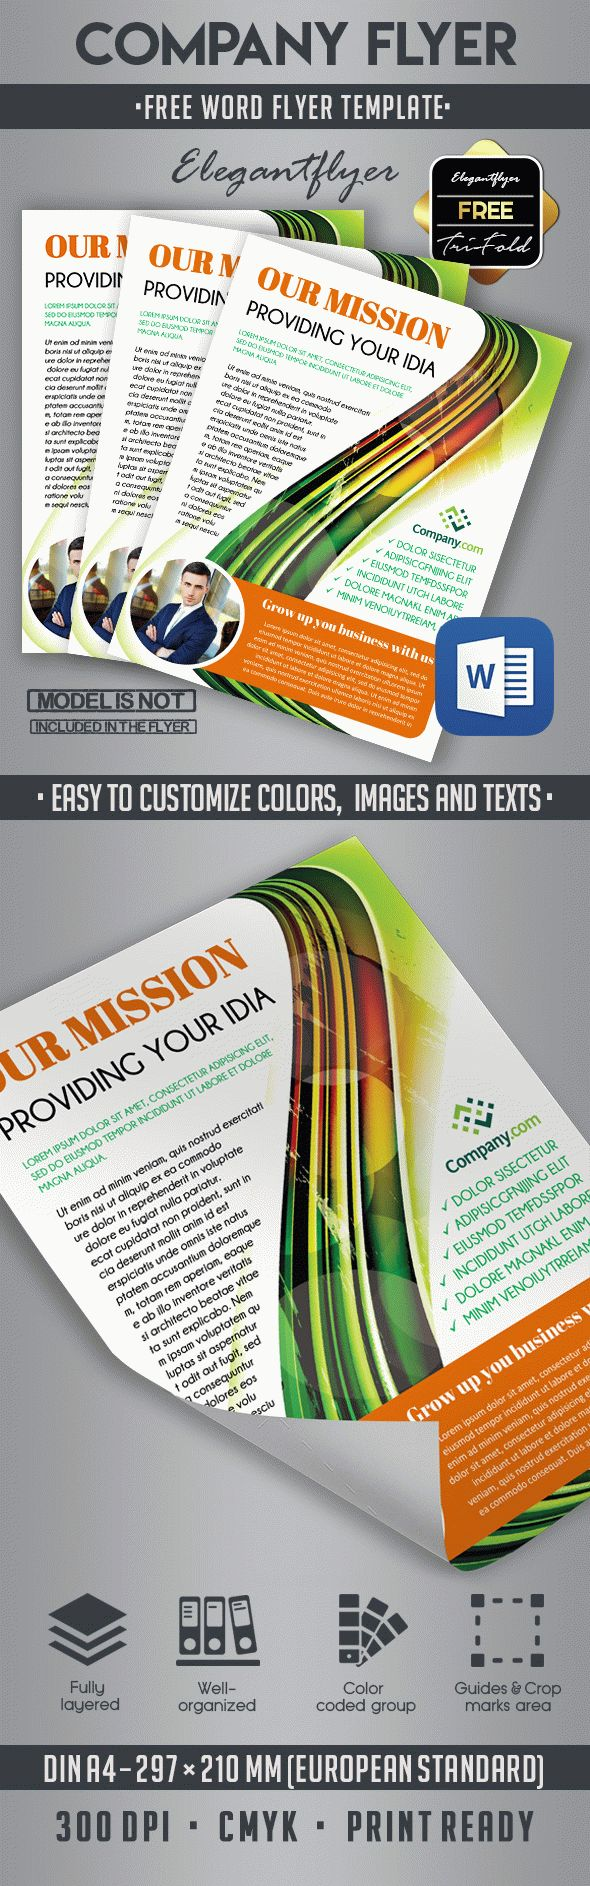 10 Best business flyer templates in Word – Free Word Flyer Template